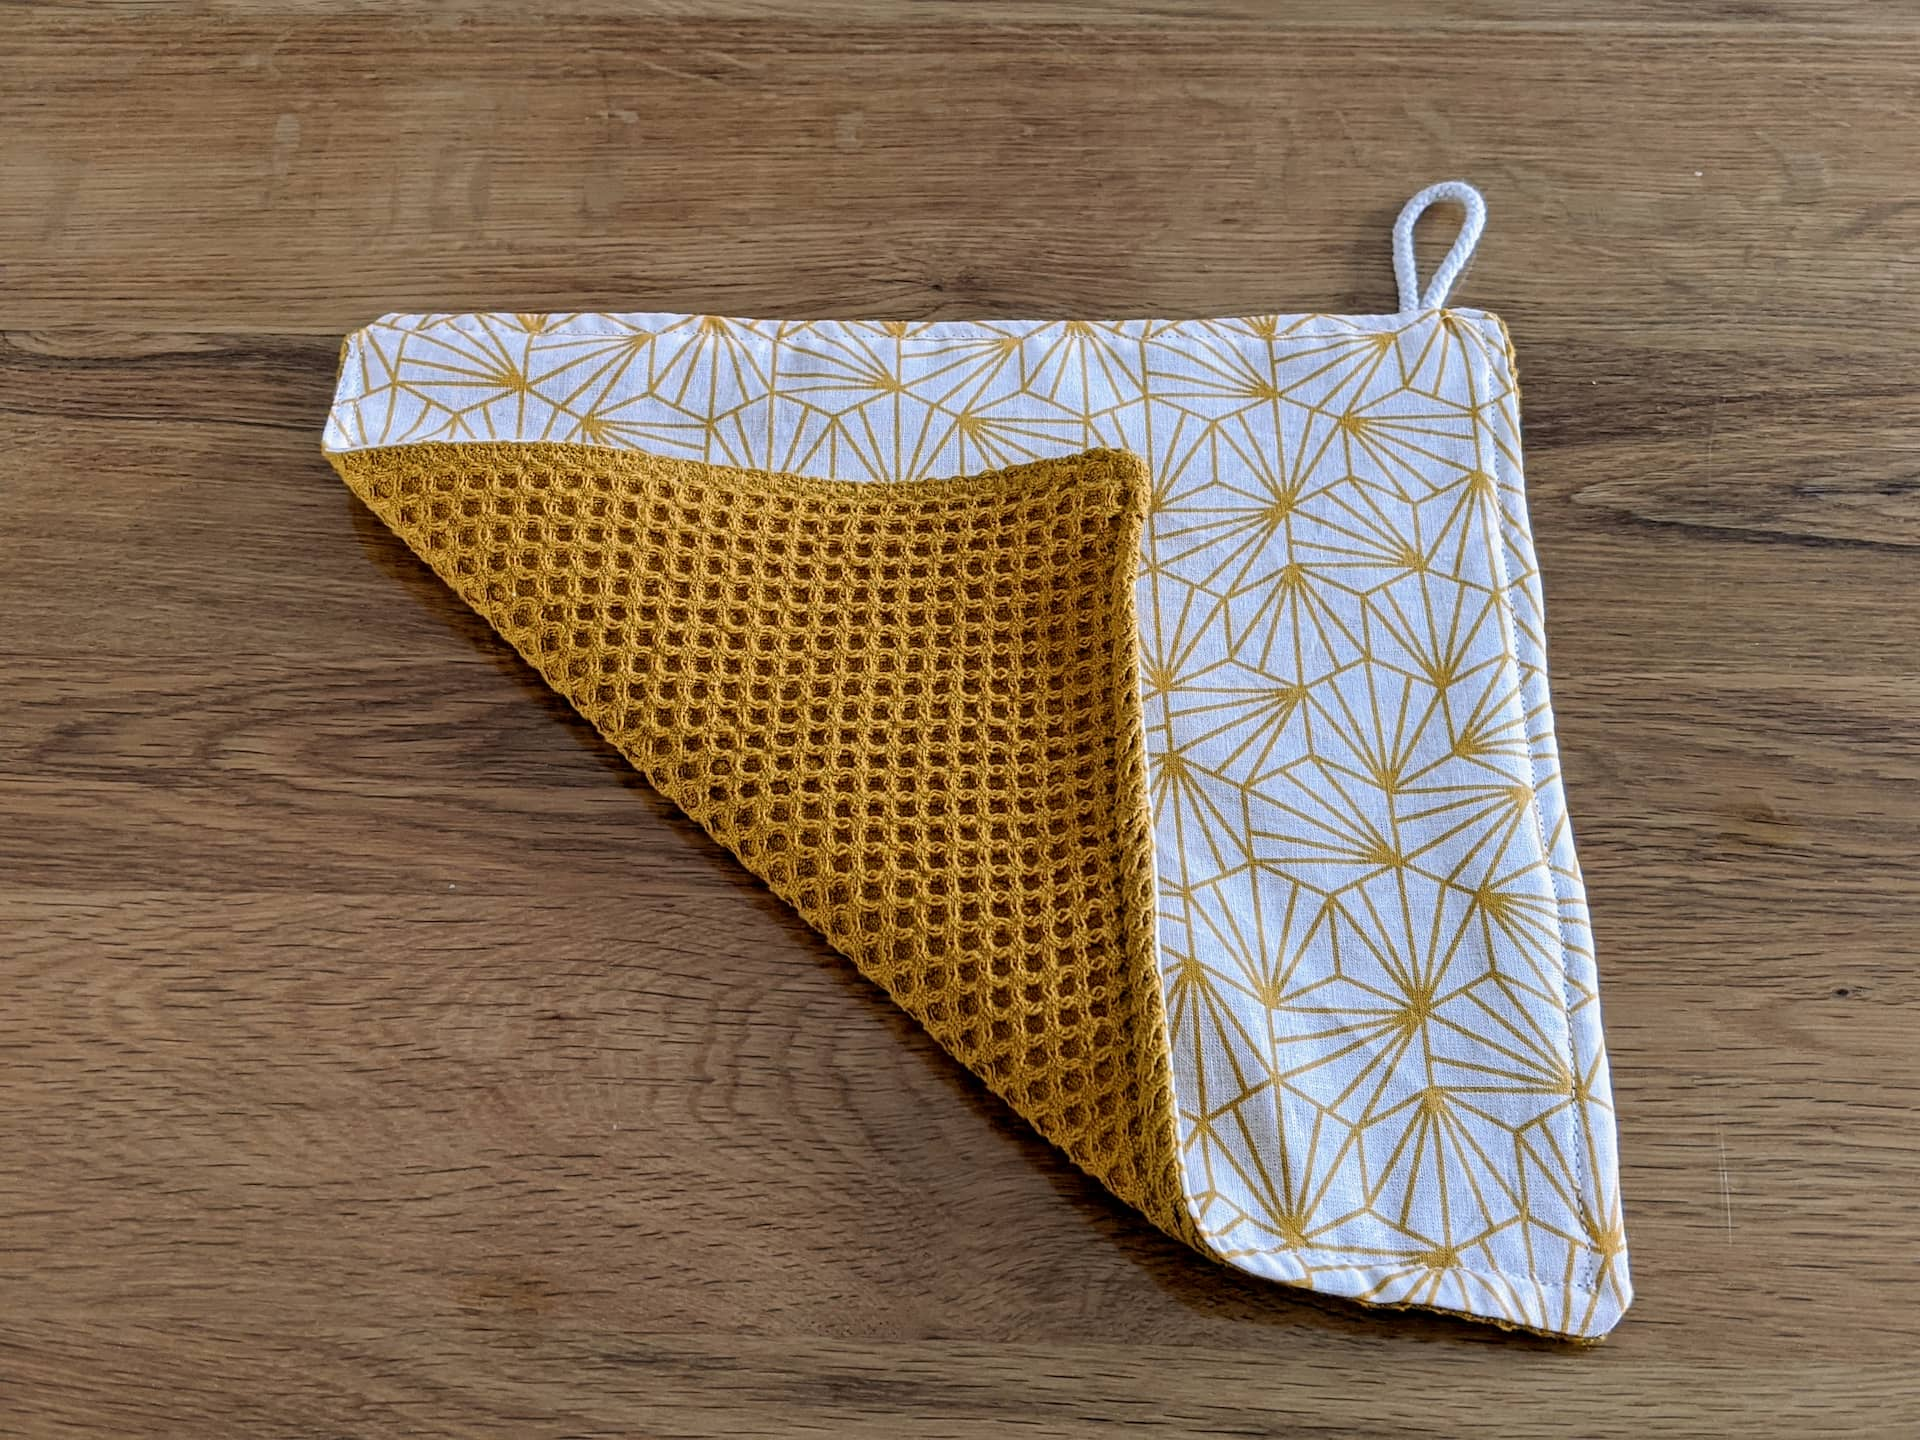 Sew zero waste washable and reusable unpaper towel easily